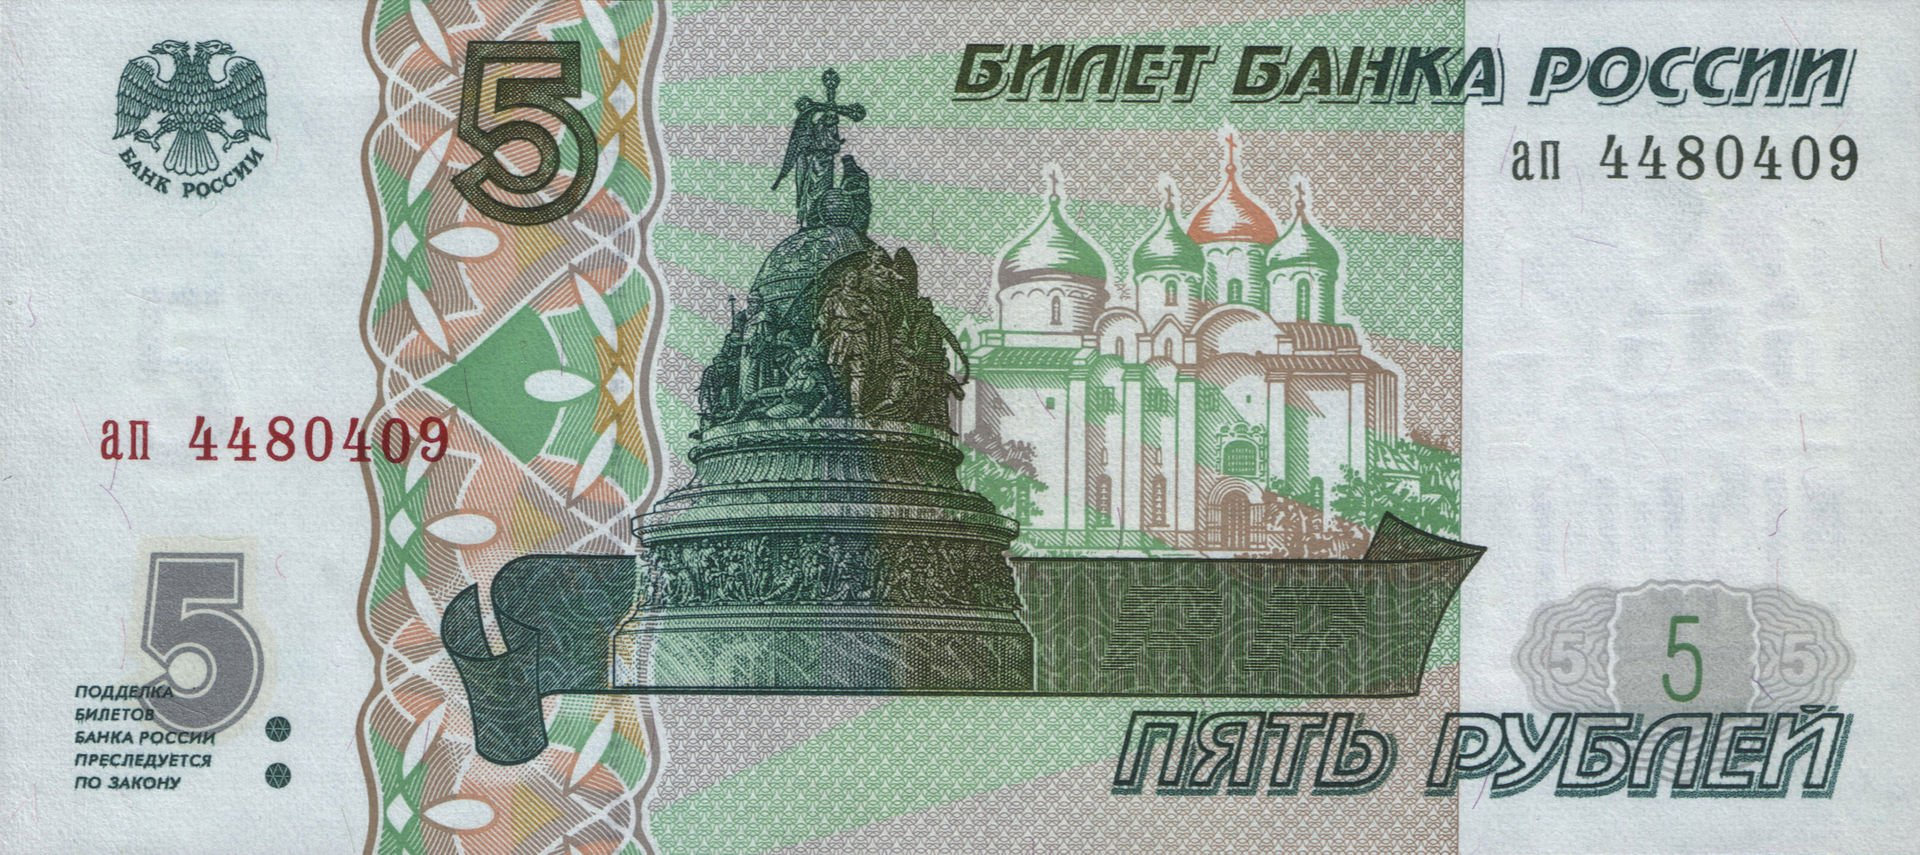 Banknote_5_rubles_(1997)_front